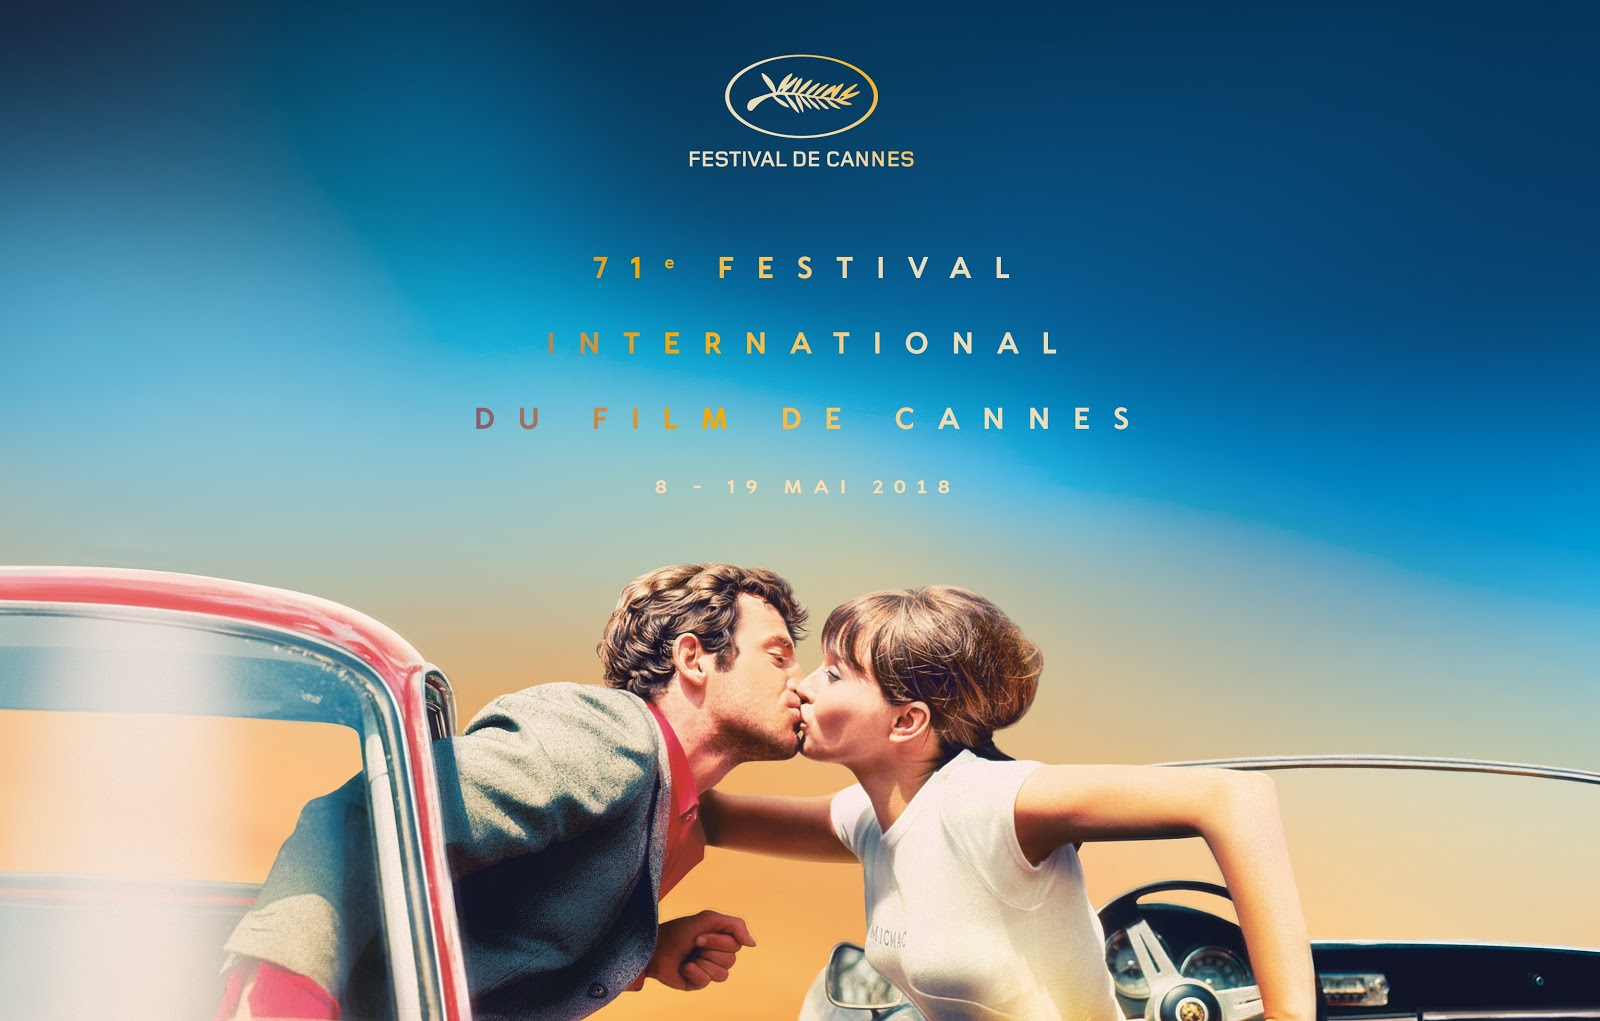 The Sitges Festival will be making an appearance at Cannes 2018